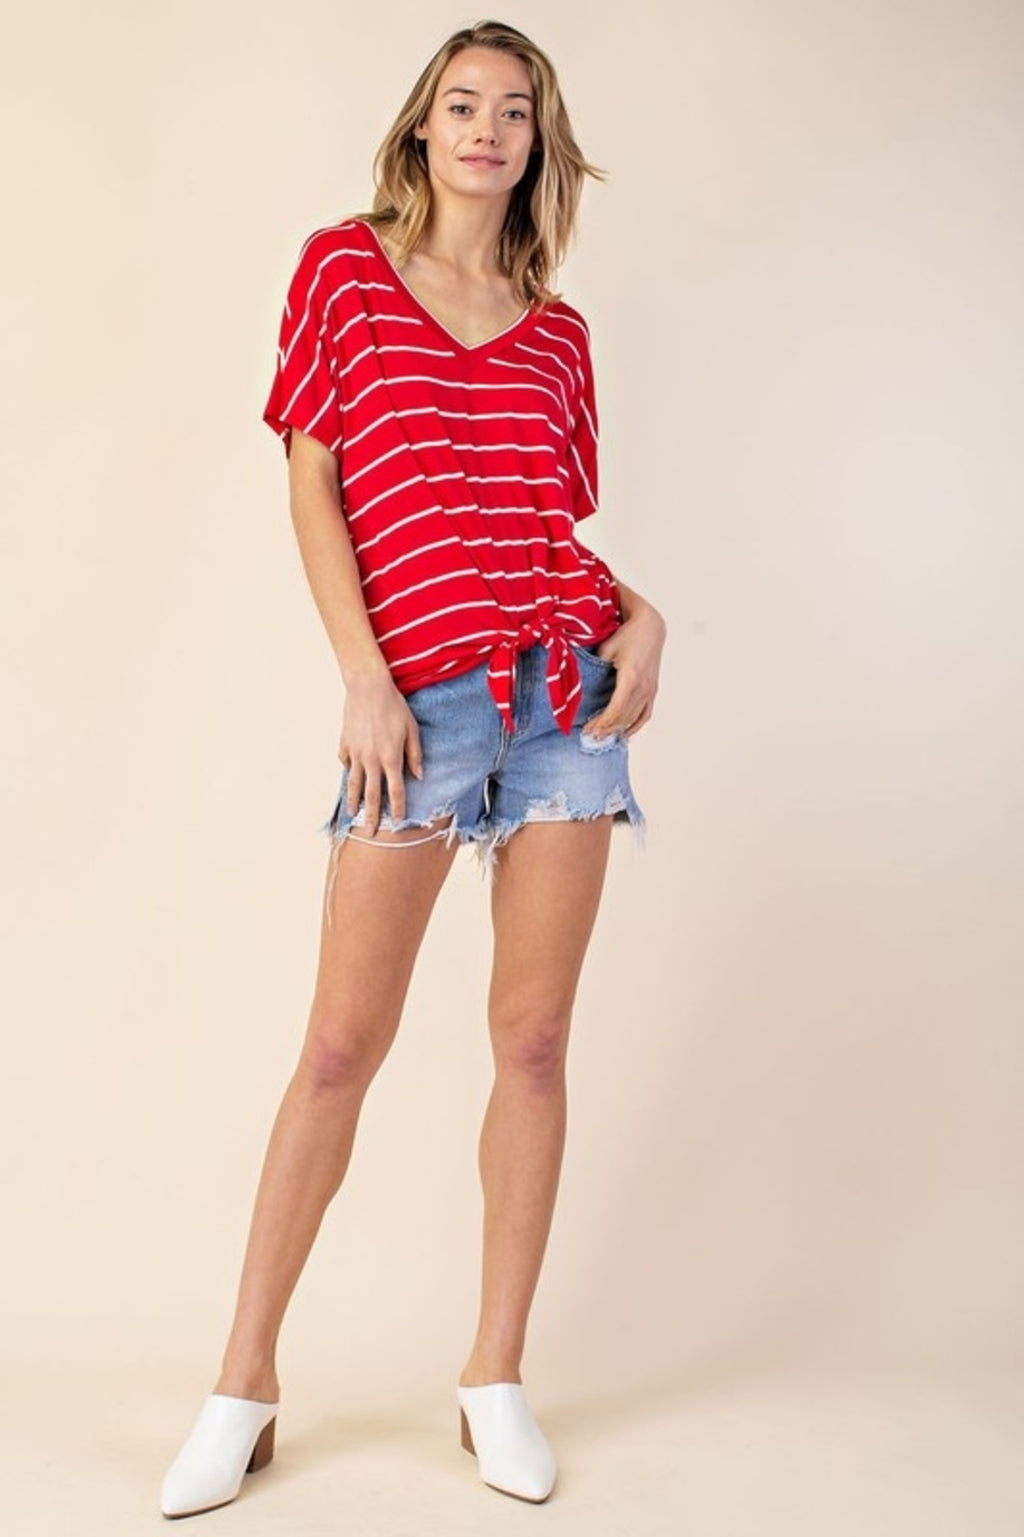 Summertime Stripes Top